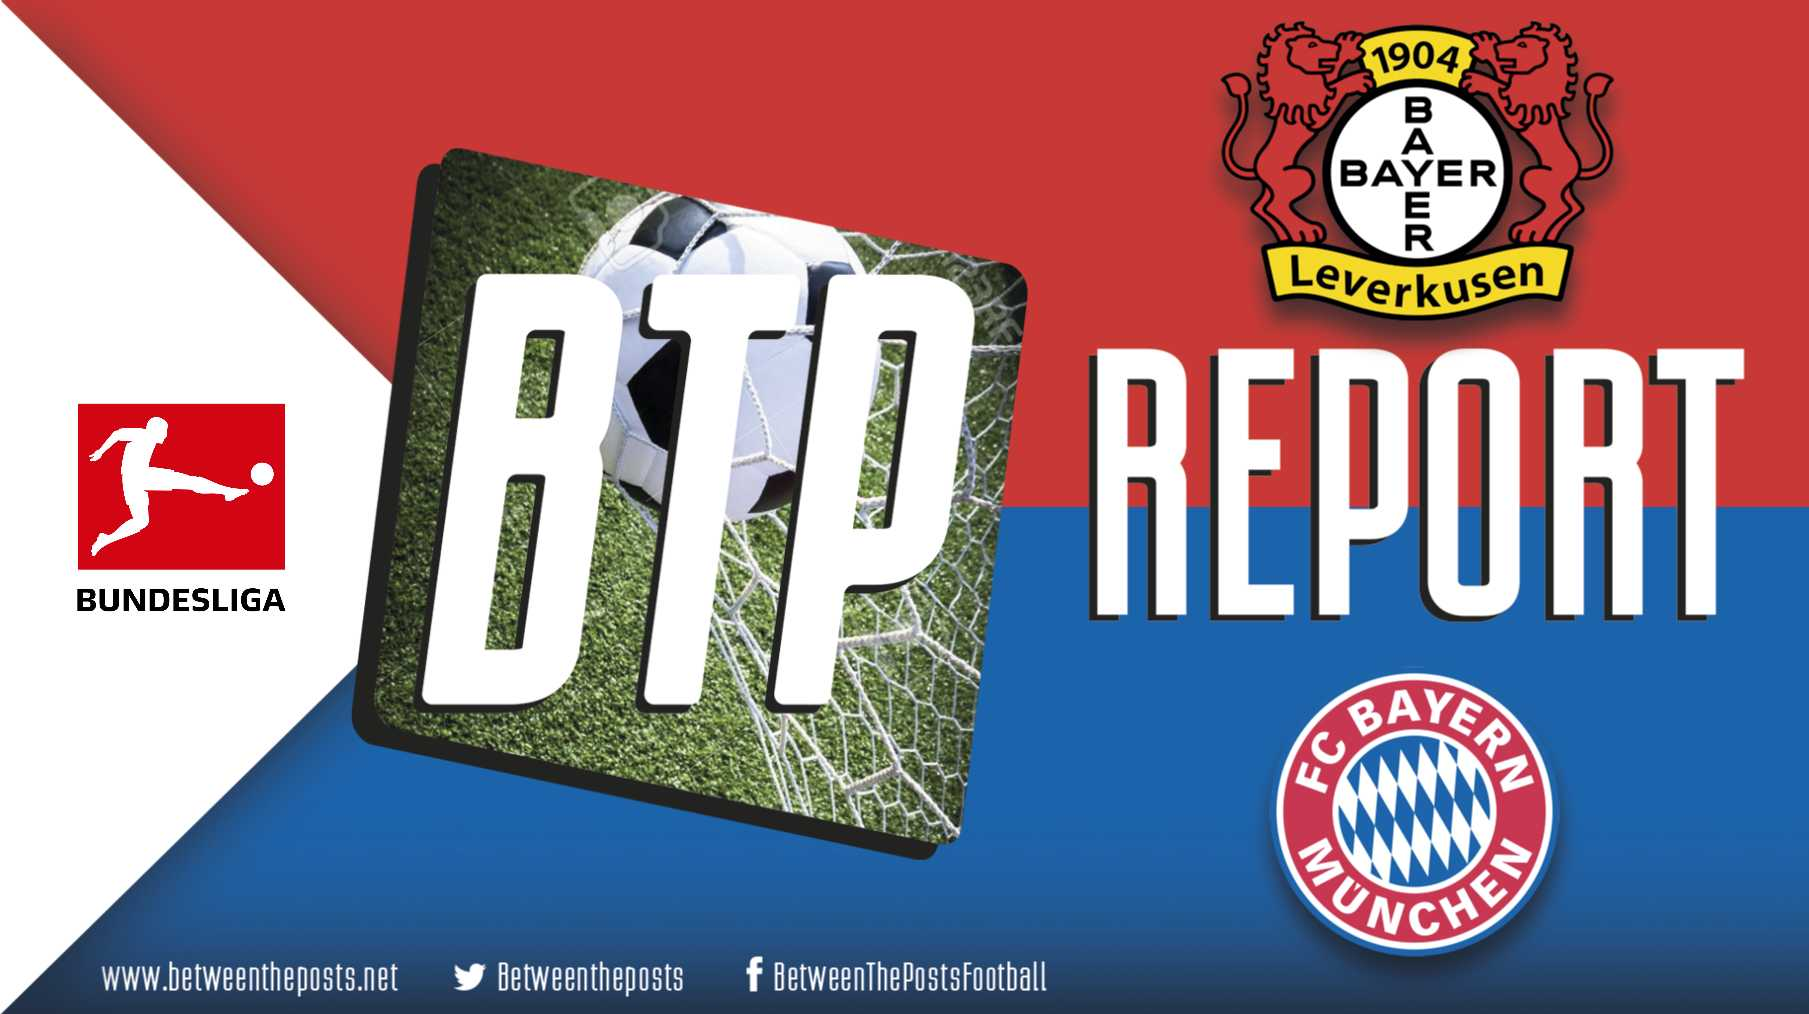 Tactical analysis Bayer Leverkusen - Bayern Munich 3-1 Bundesliga